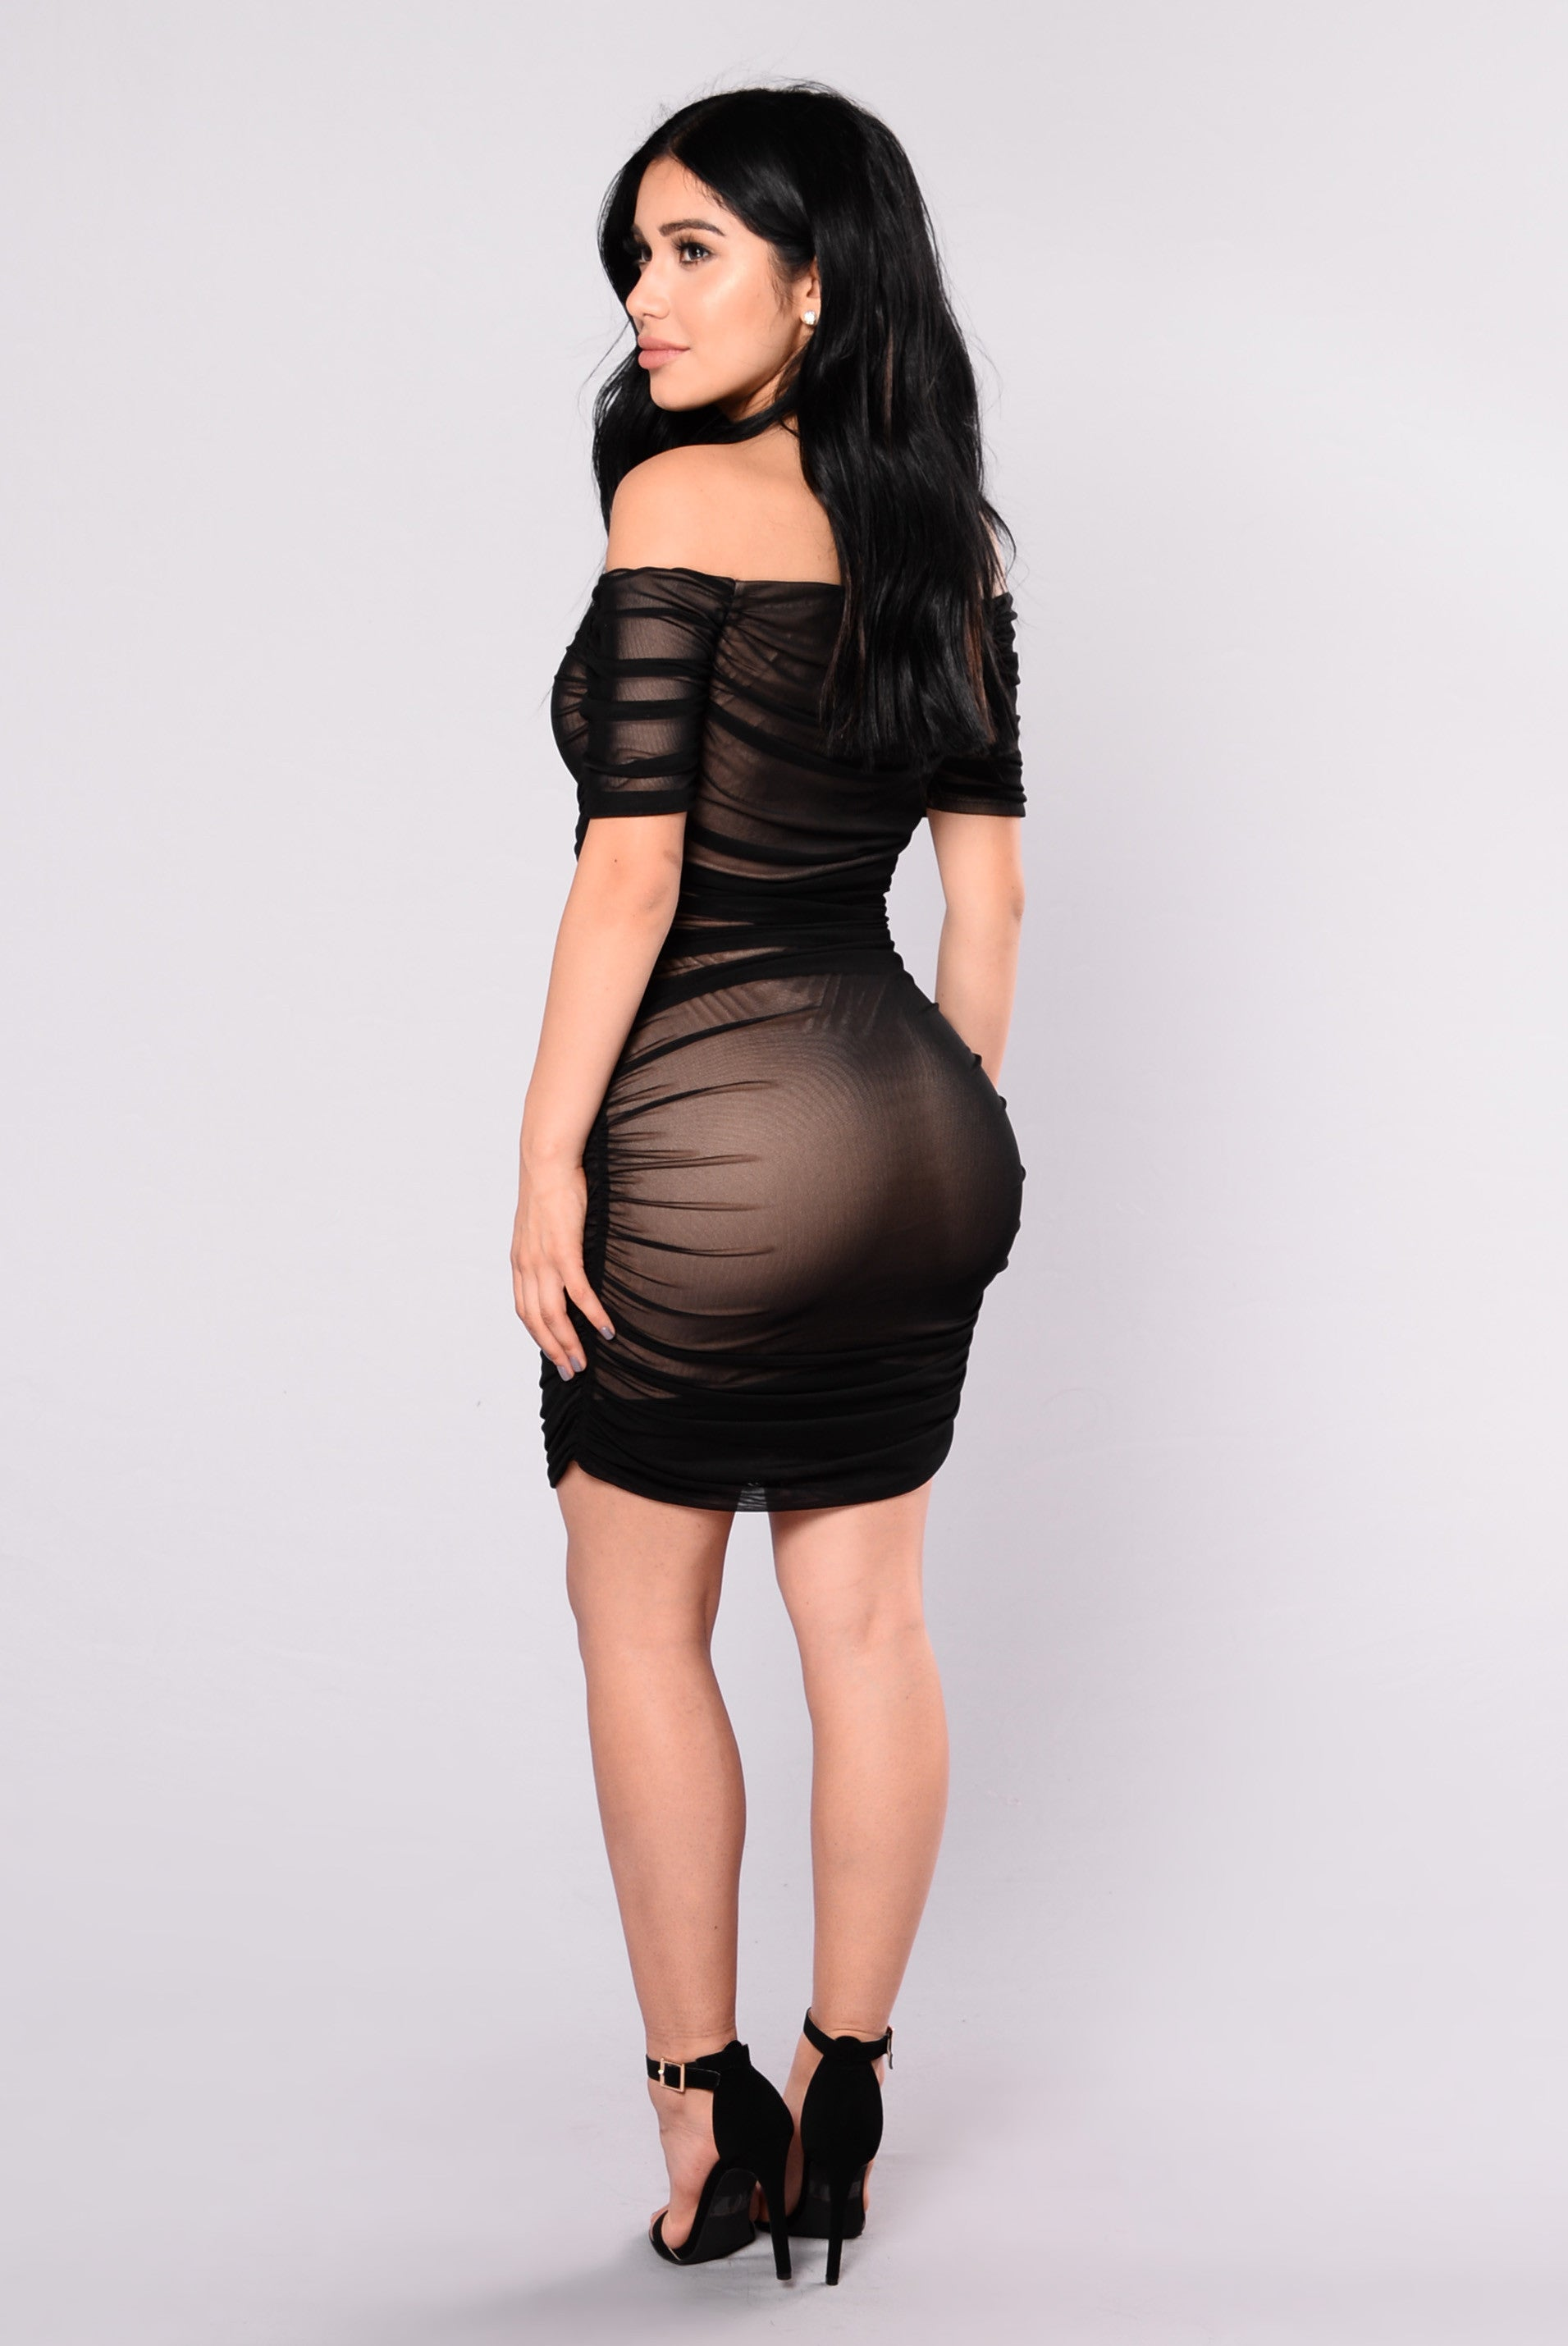 nude fashion Body Love Dress - Black/Nude